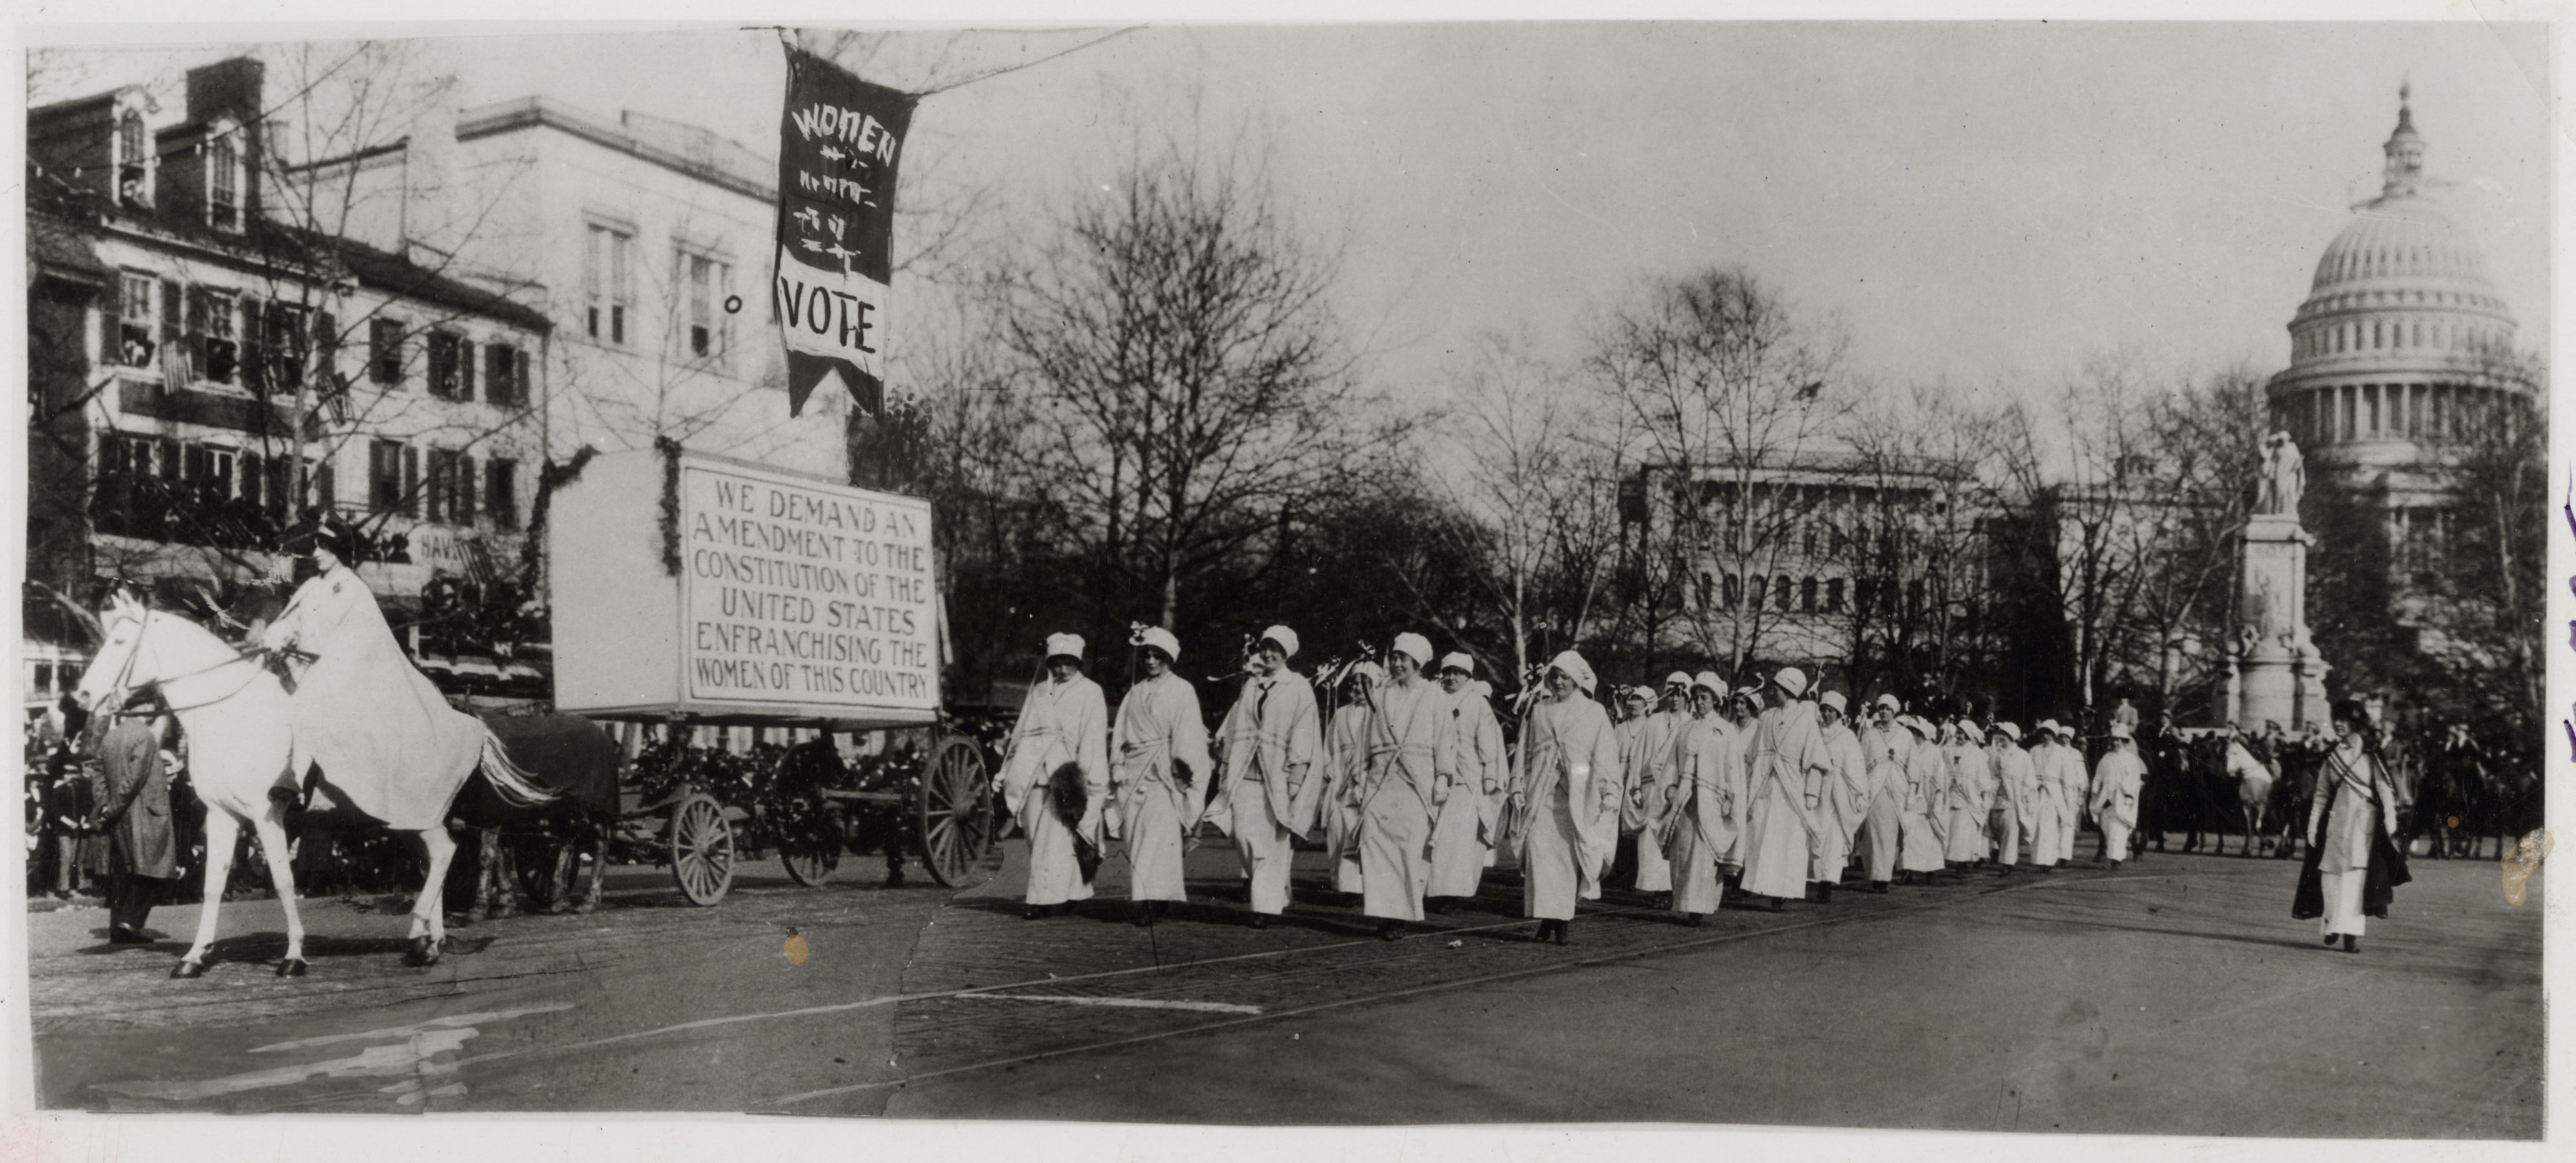 Women march in a suffrage parade, Washington, DC